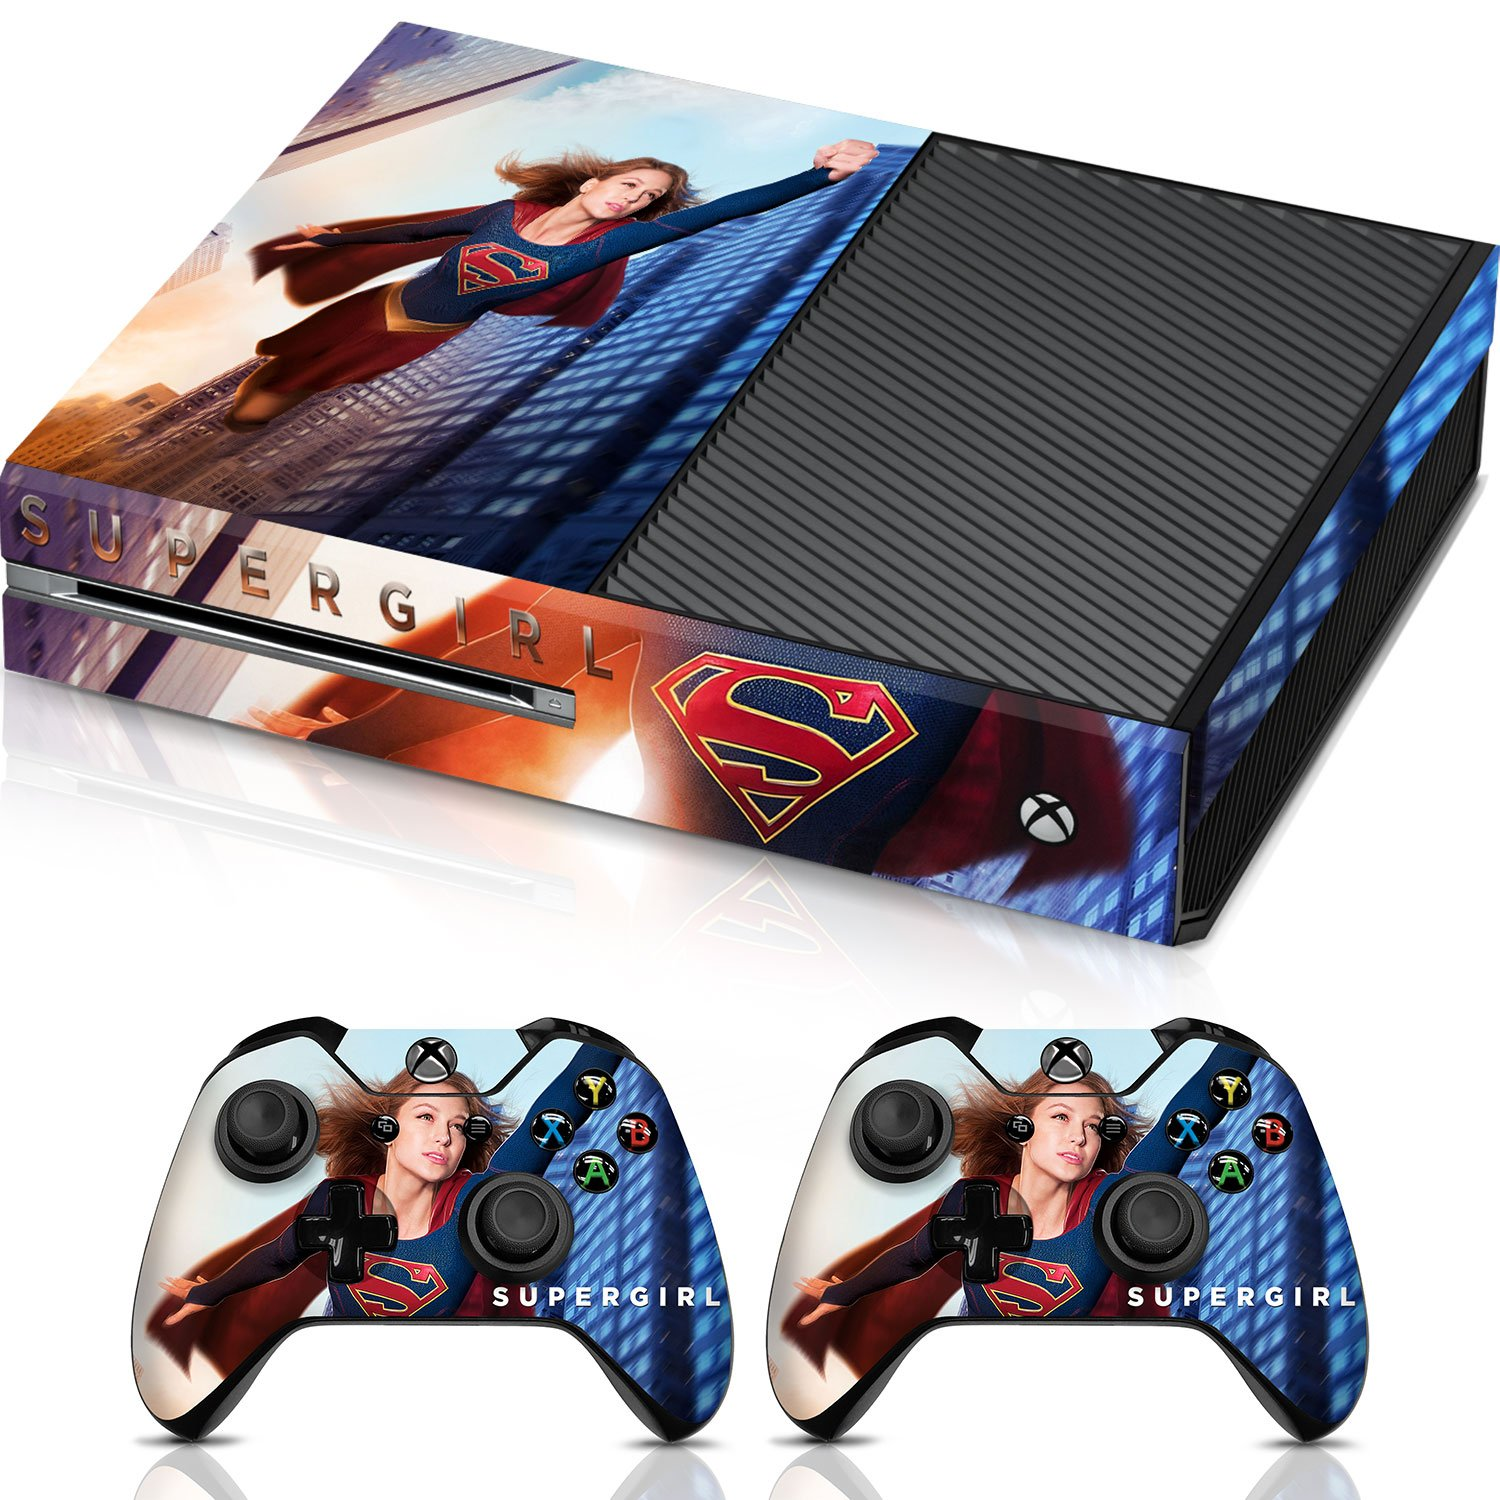 Controller Gear Supergirl Flying High - Xbox One Combo Skin Set for Console and Controller